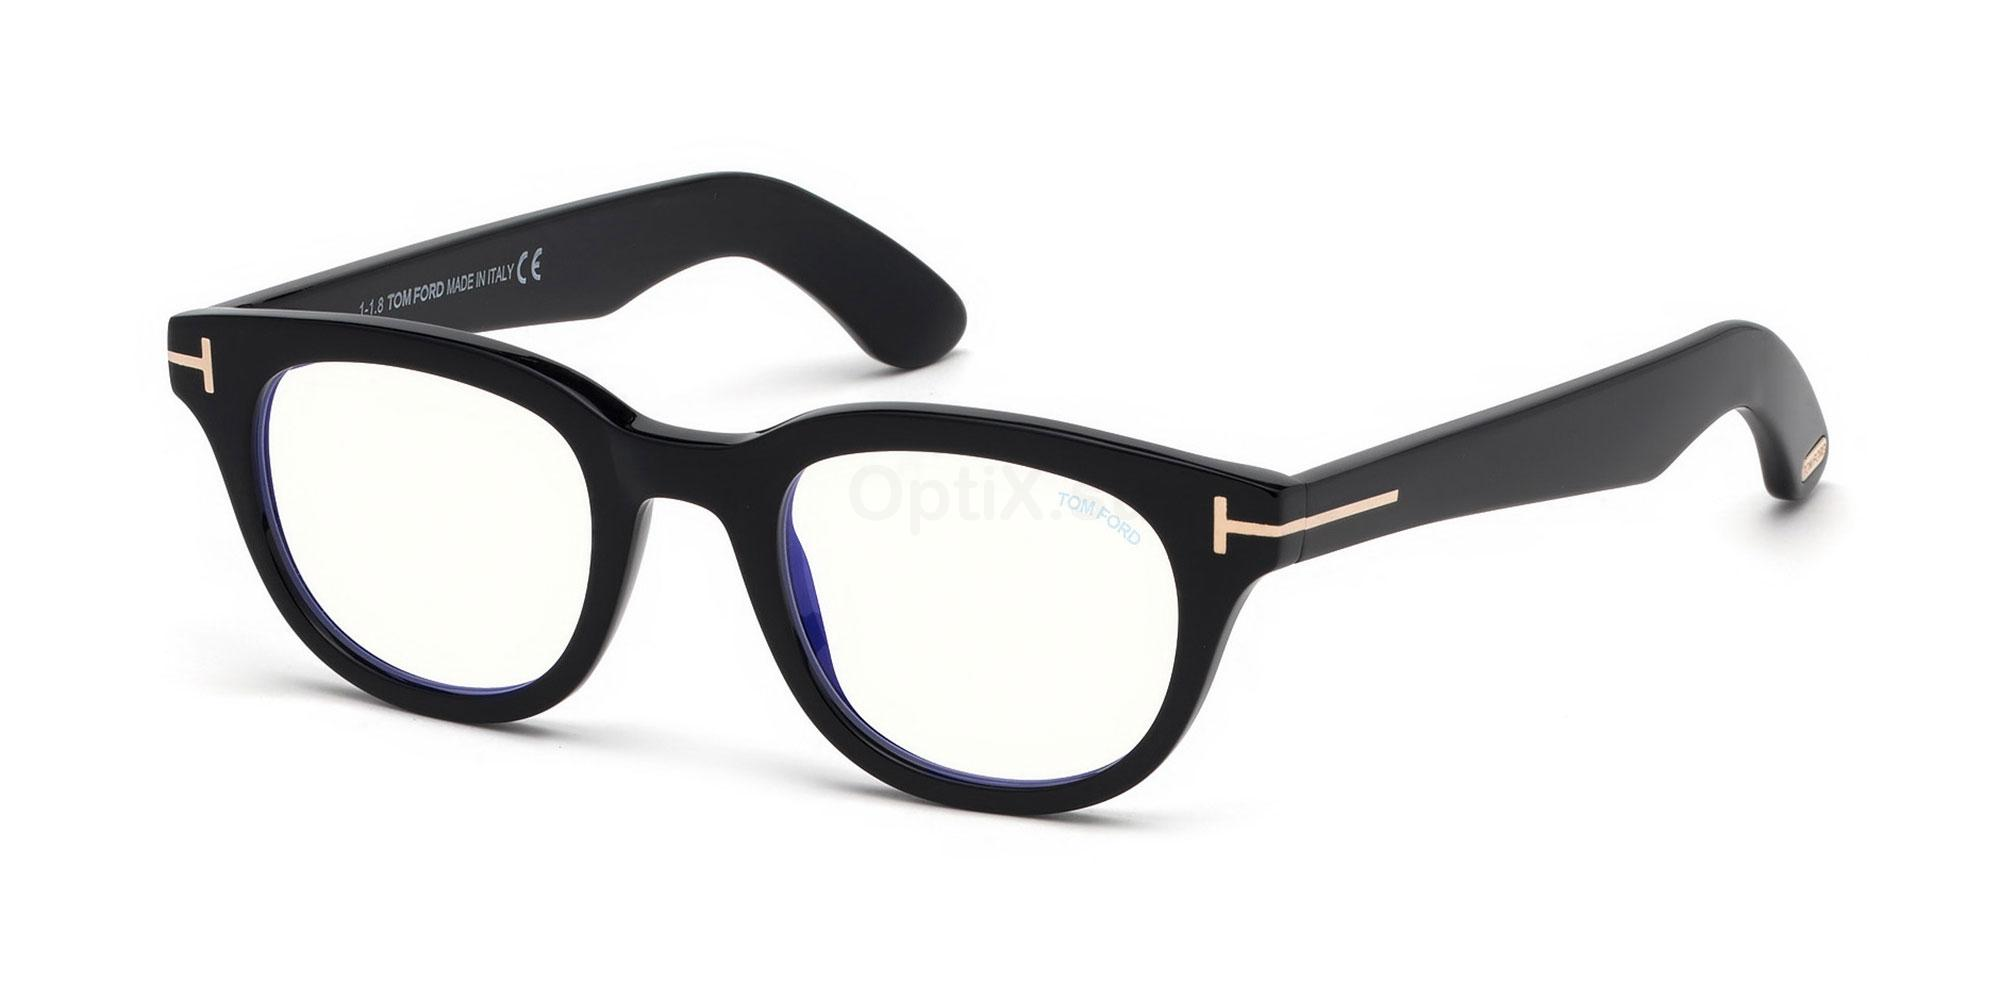 001 FT5558-B Glasses, Tom Ford